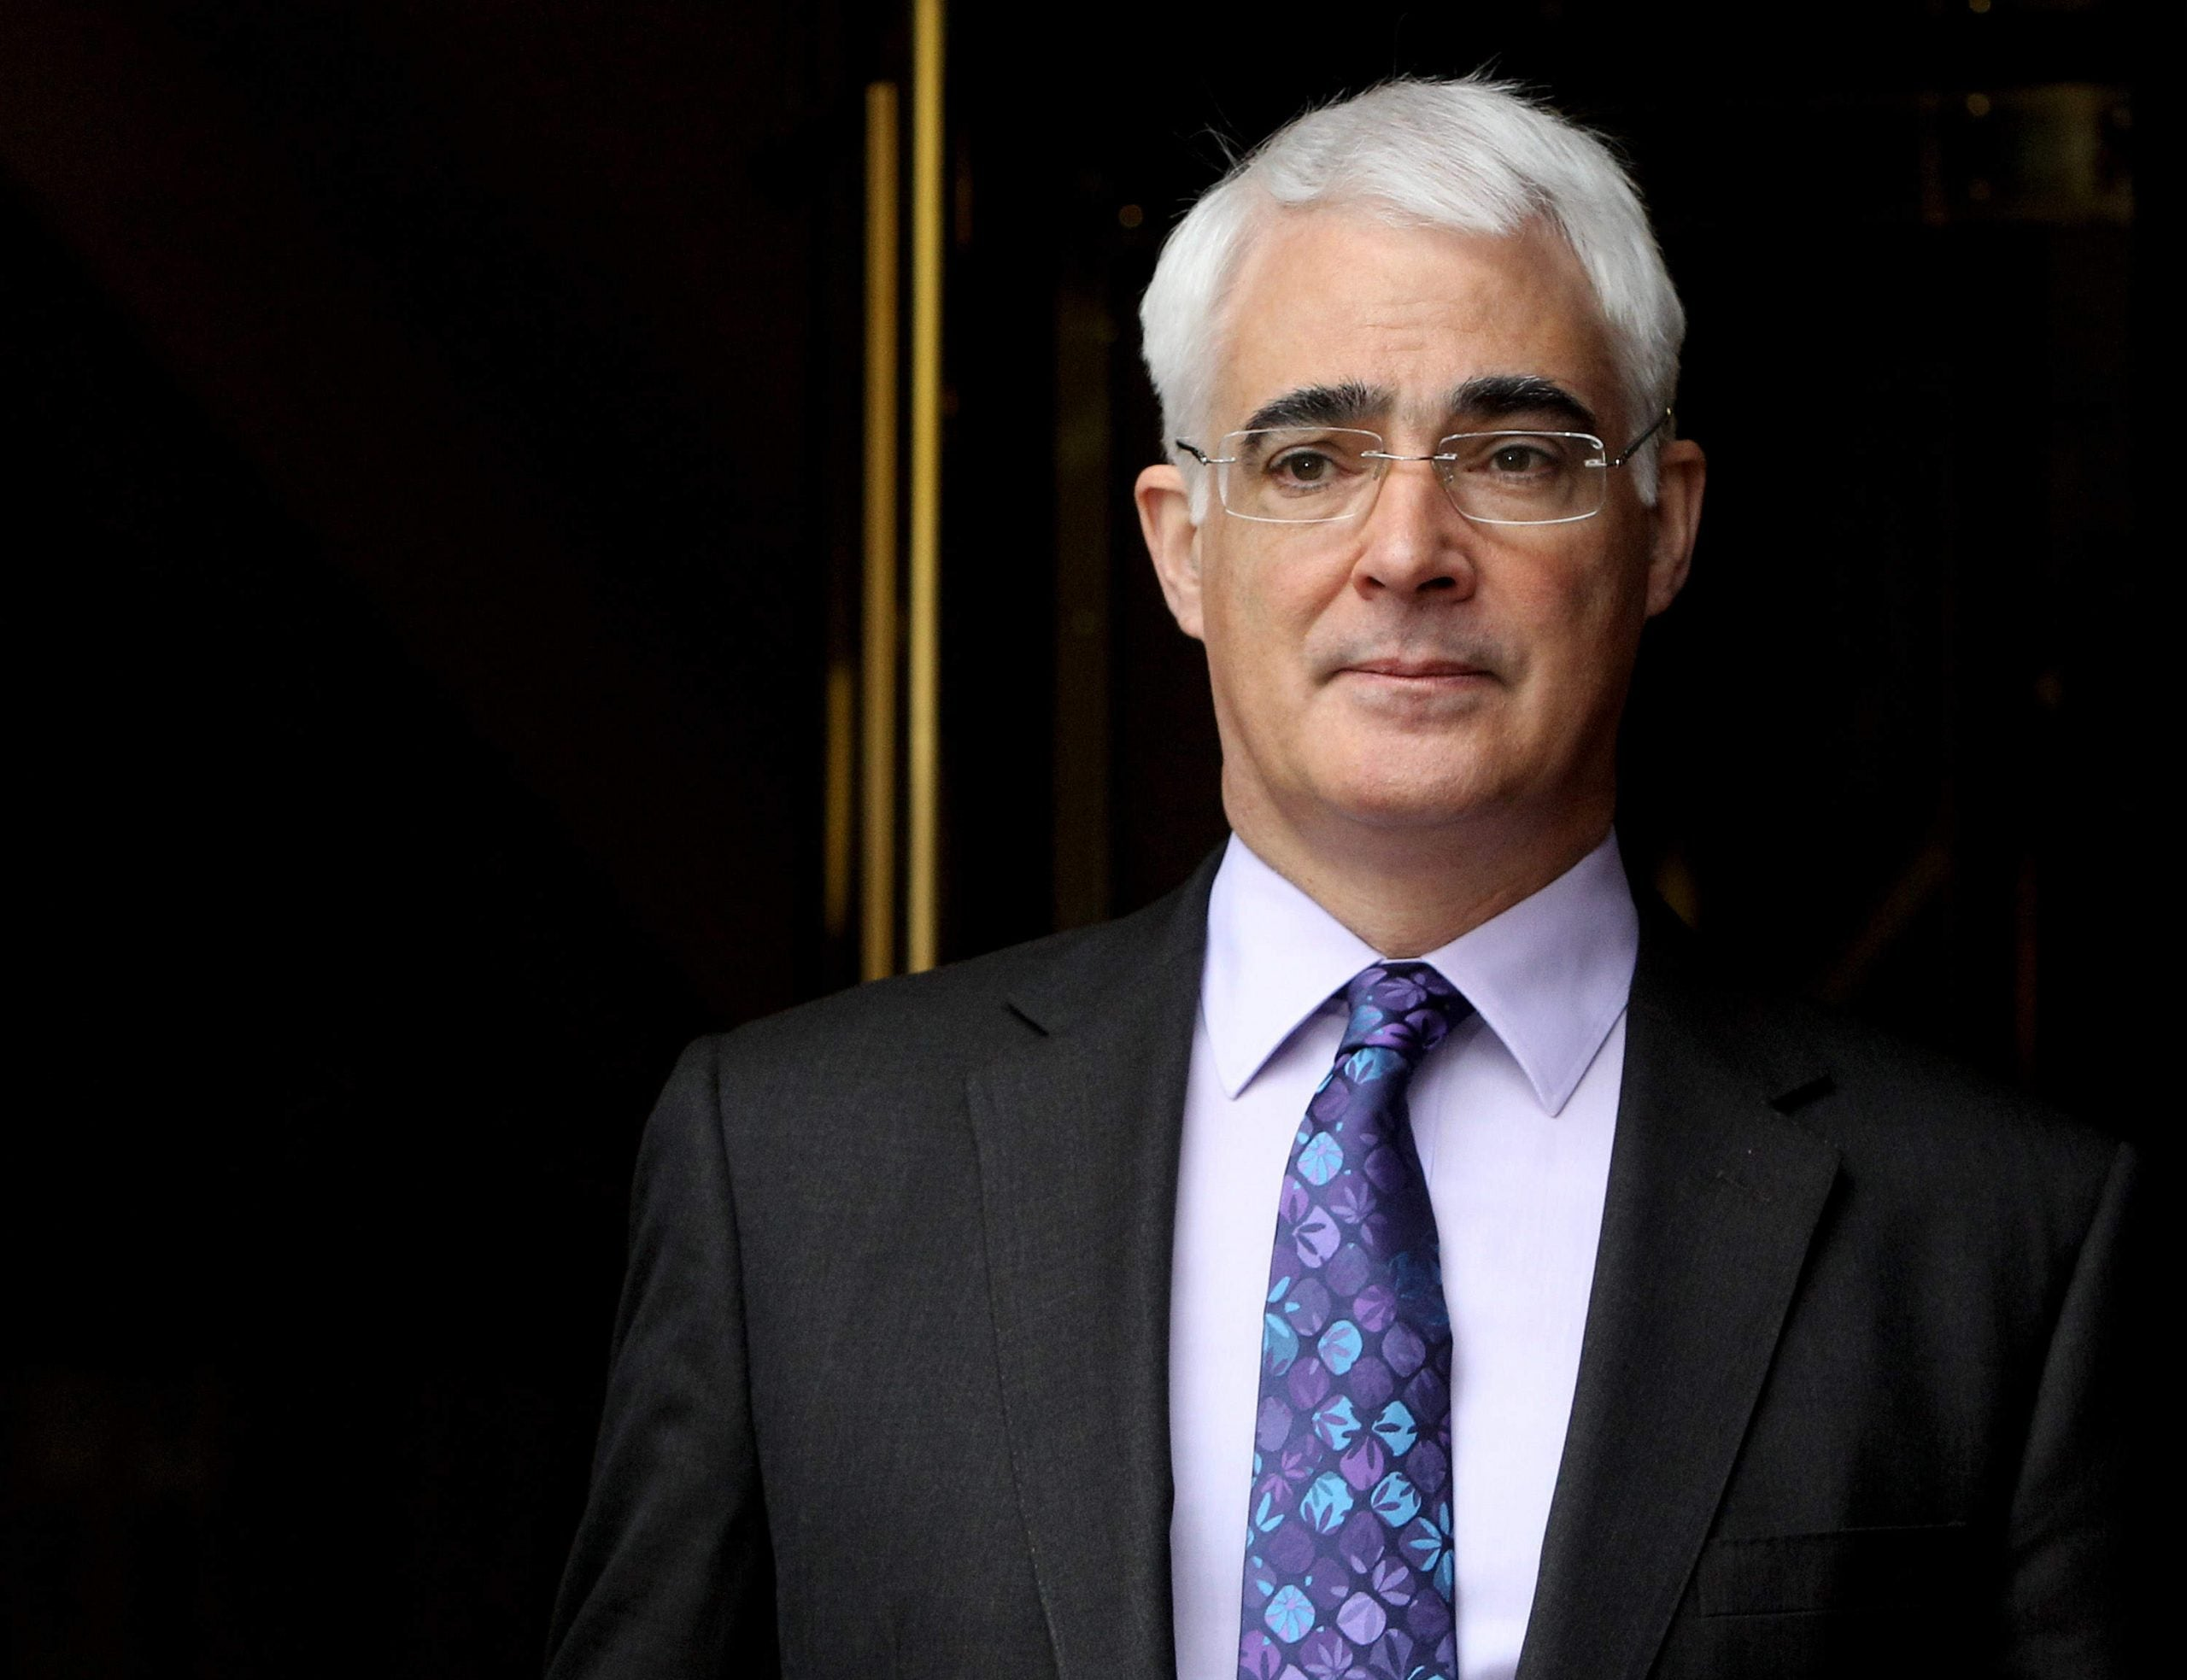 The man at our table was a beggar, and he was asking Alistair Darling for change